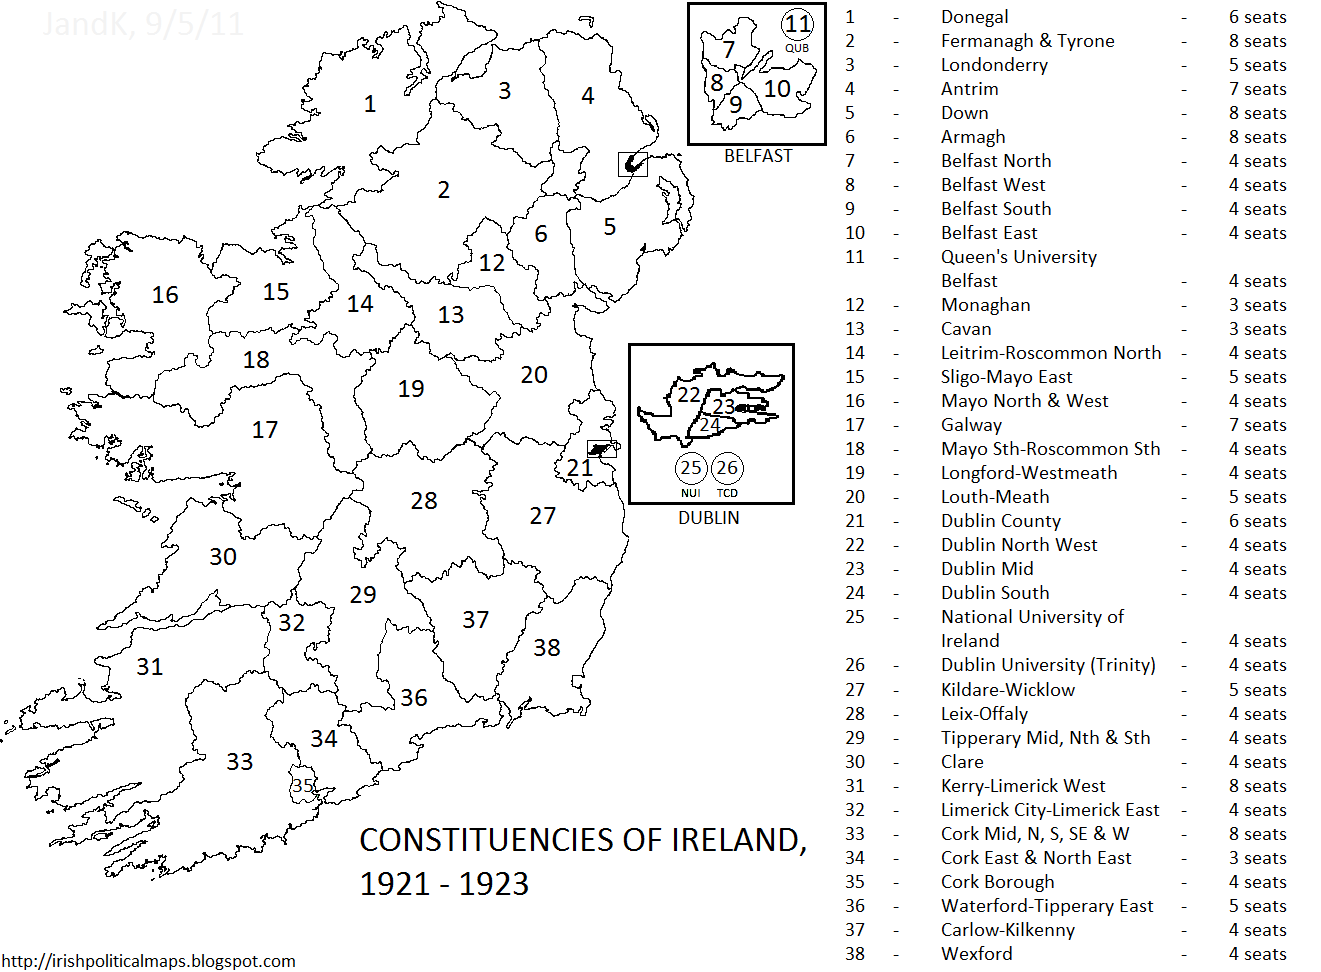 Irish Political Maps: Constituencies of Ireland, 1921 - 1923